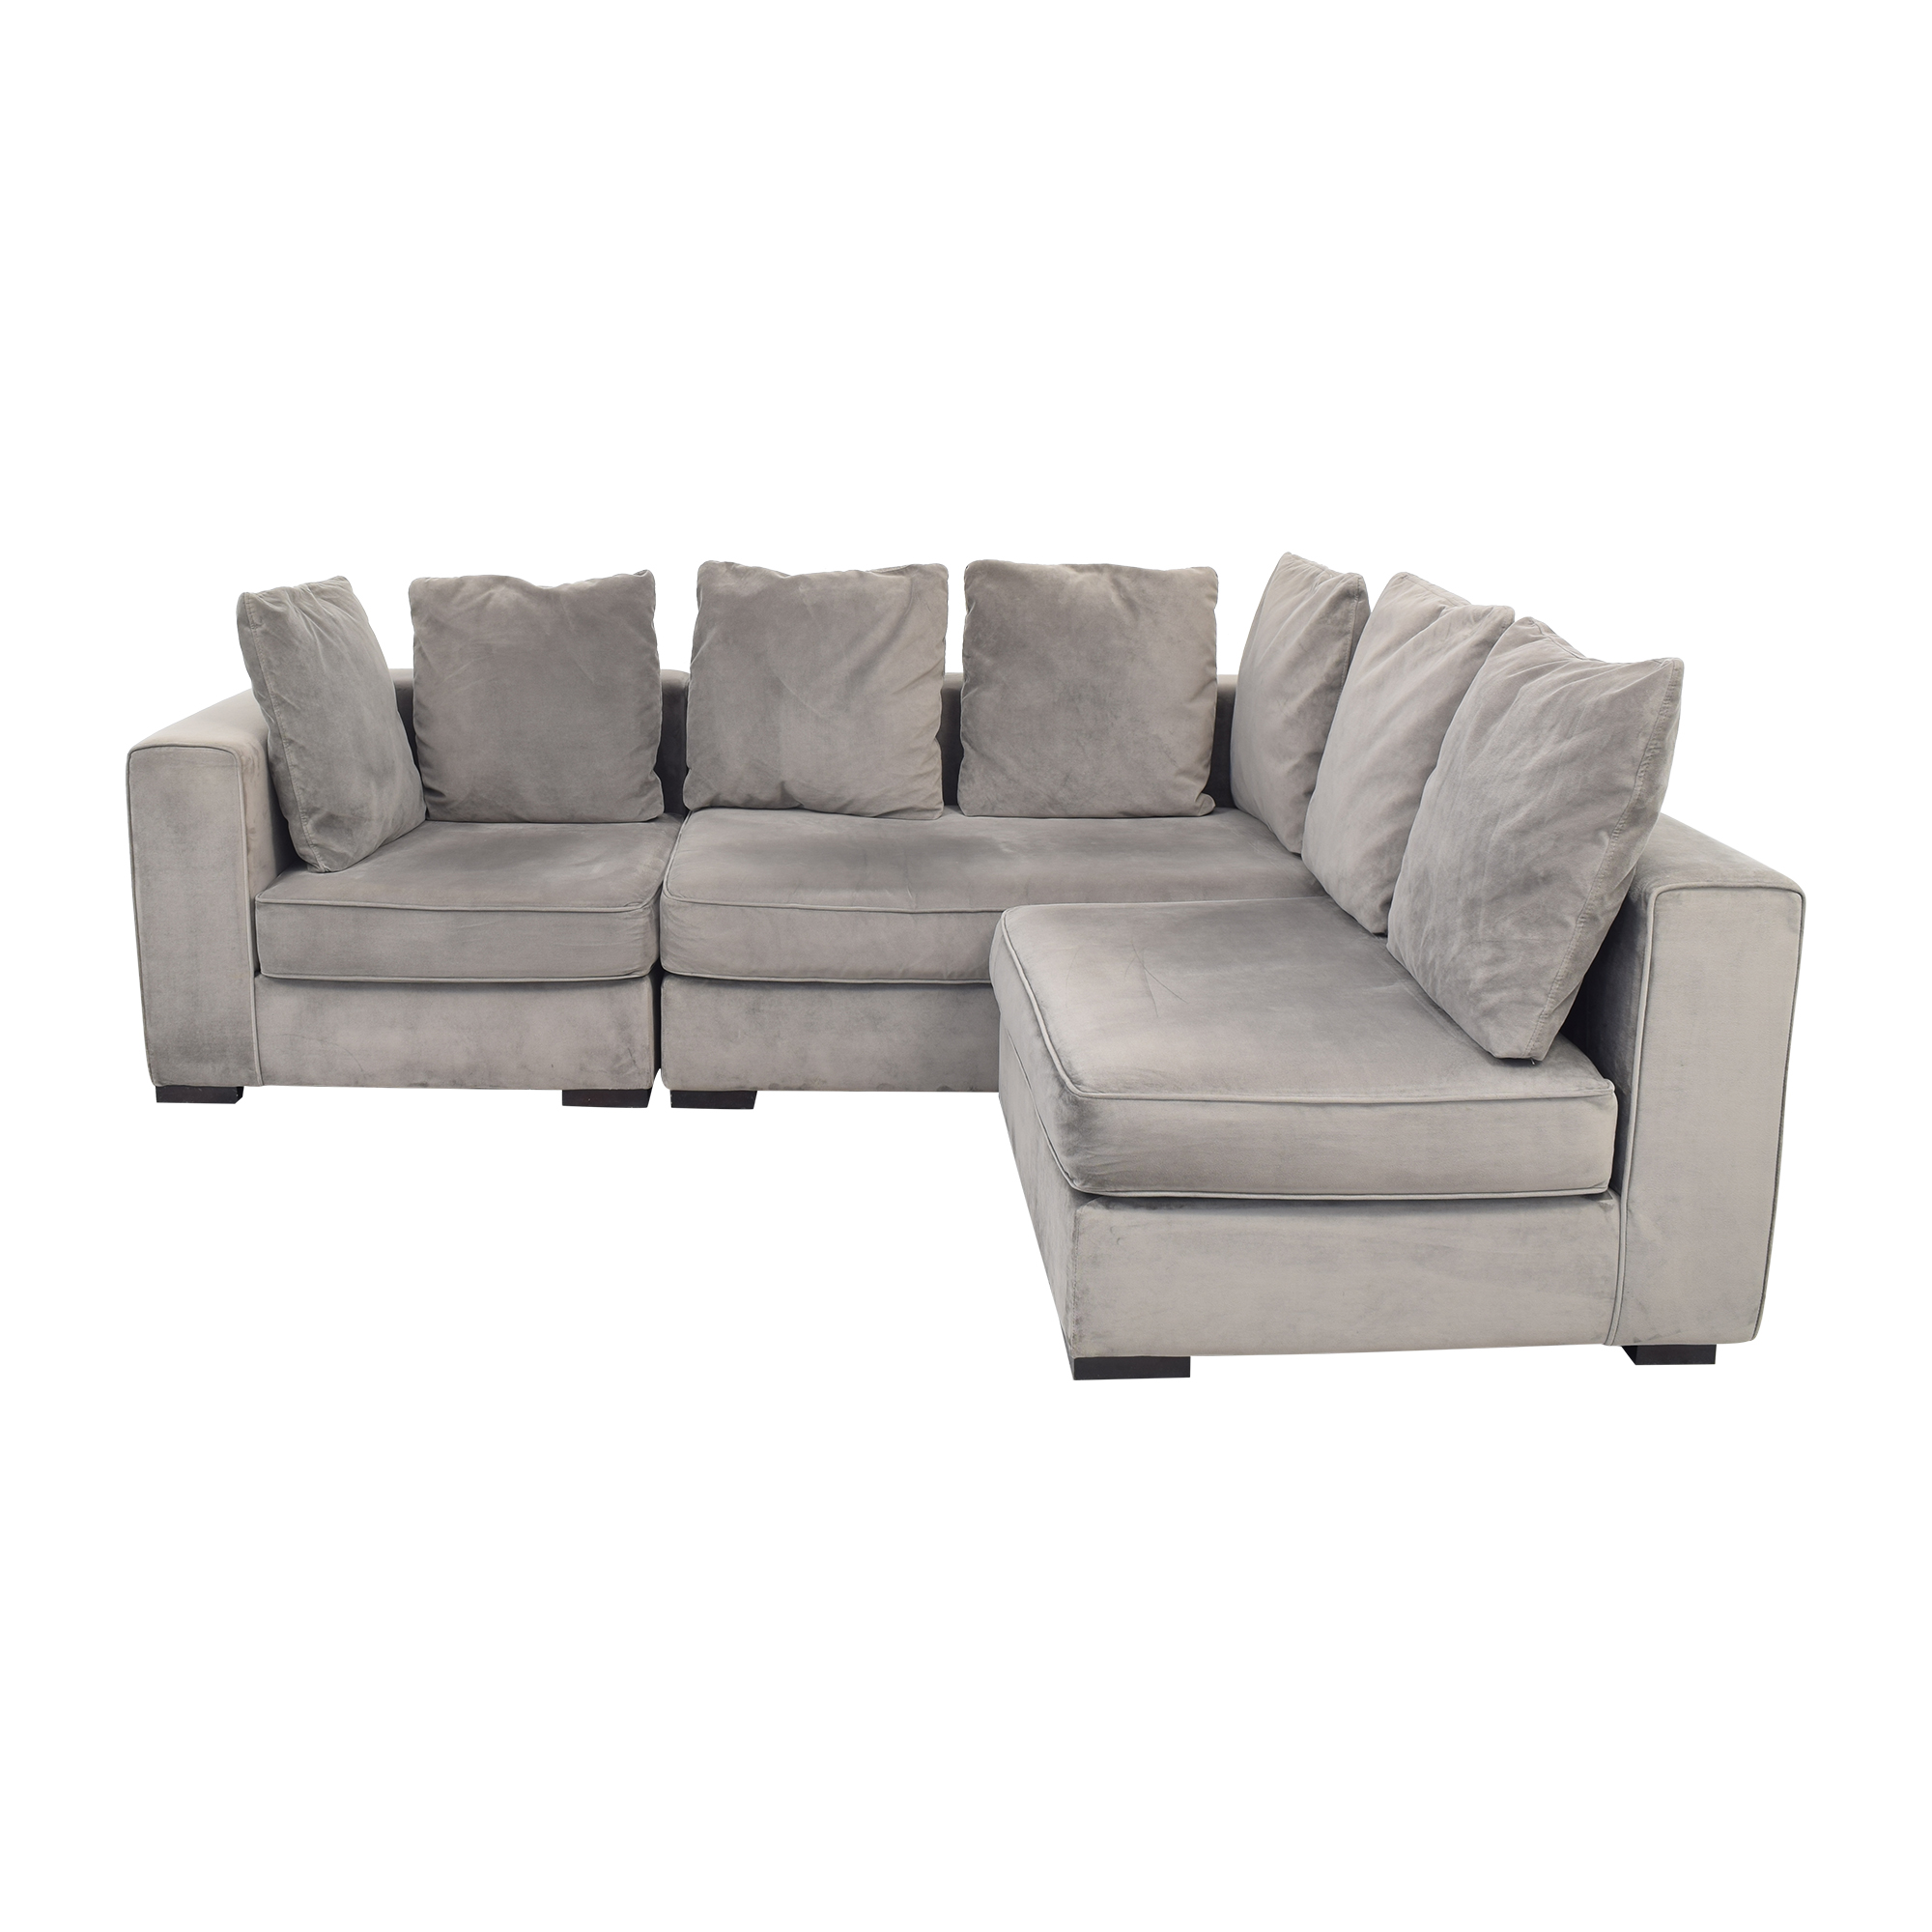 West Elm 3-Piece Sectional with Ottoman / Sectionals